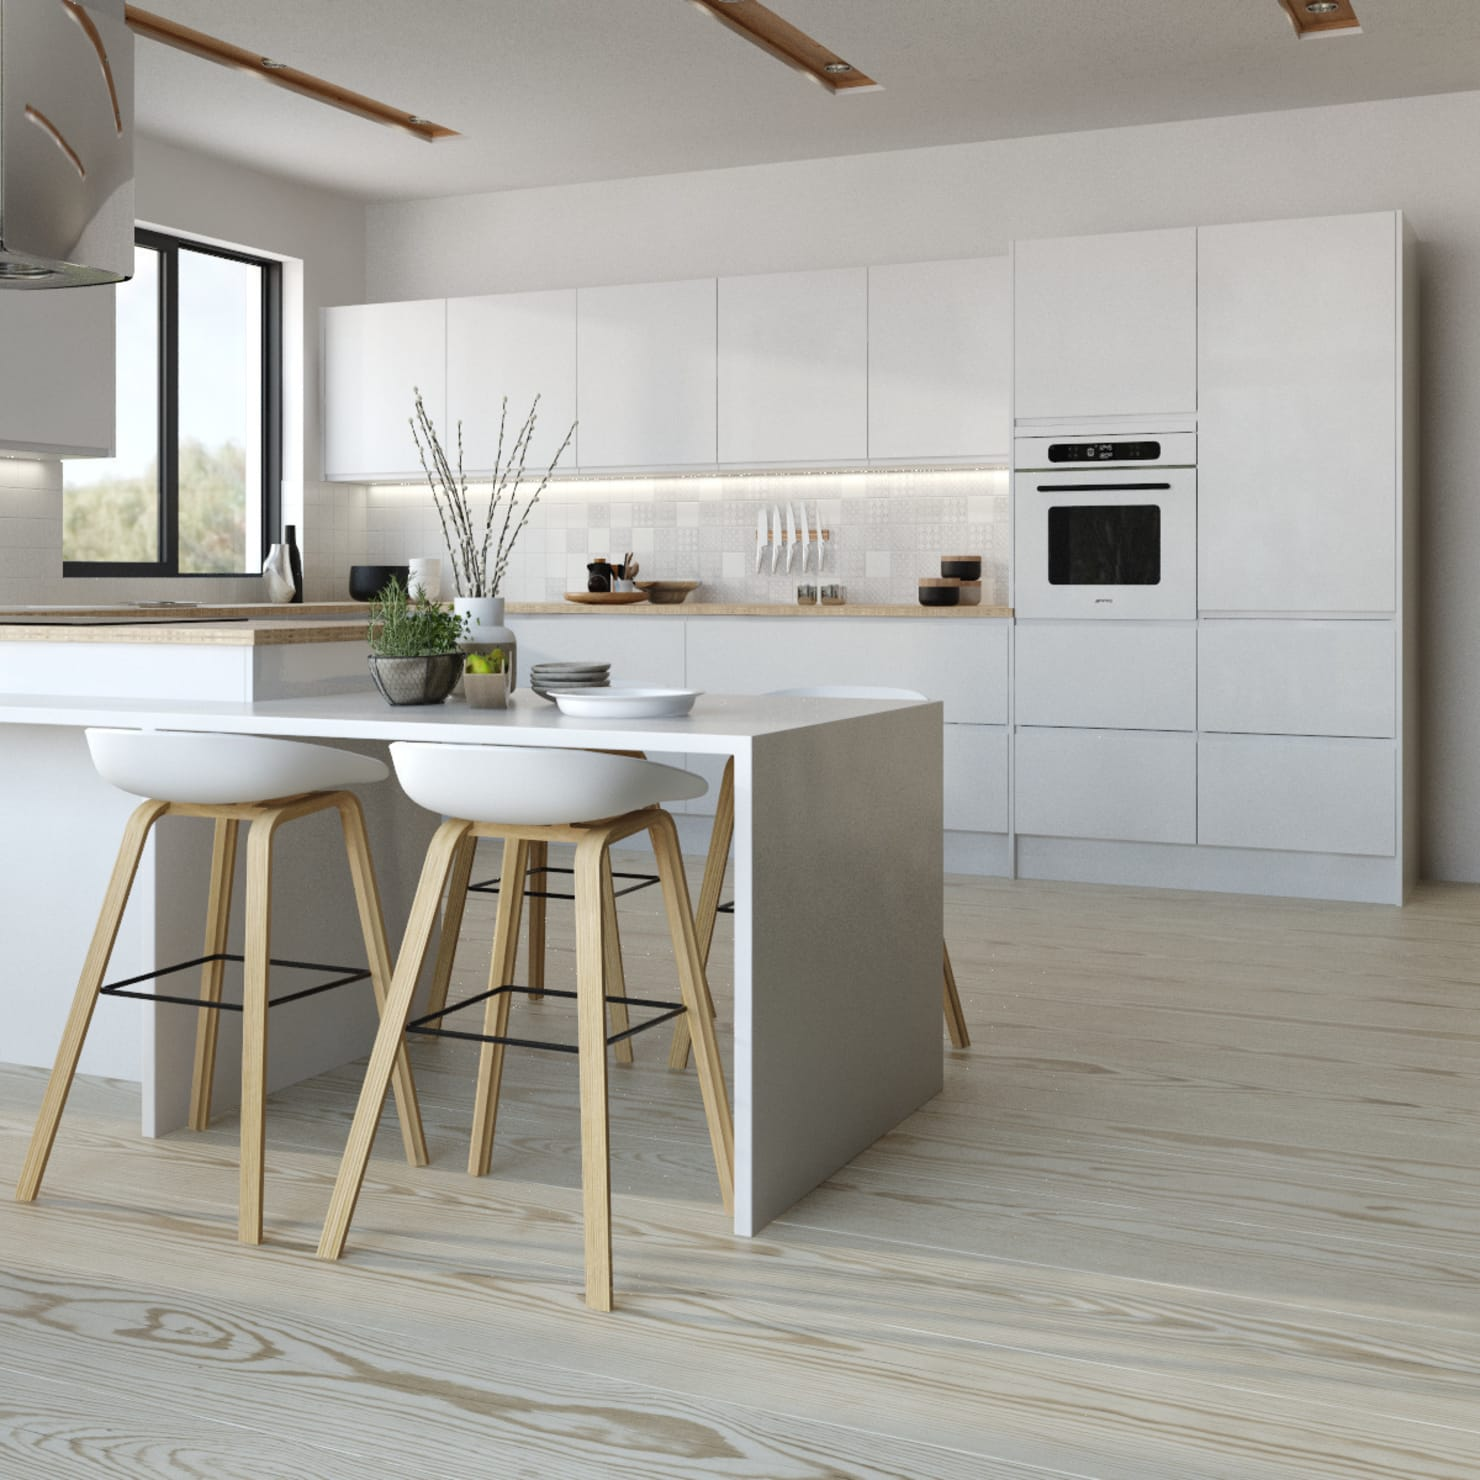 8 white kitchens that will make you say WOW